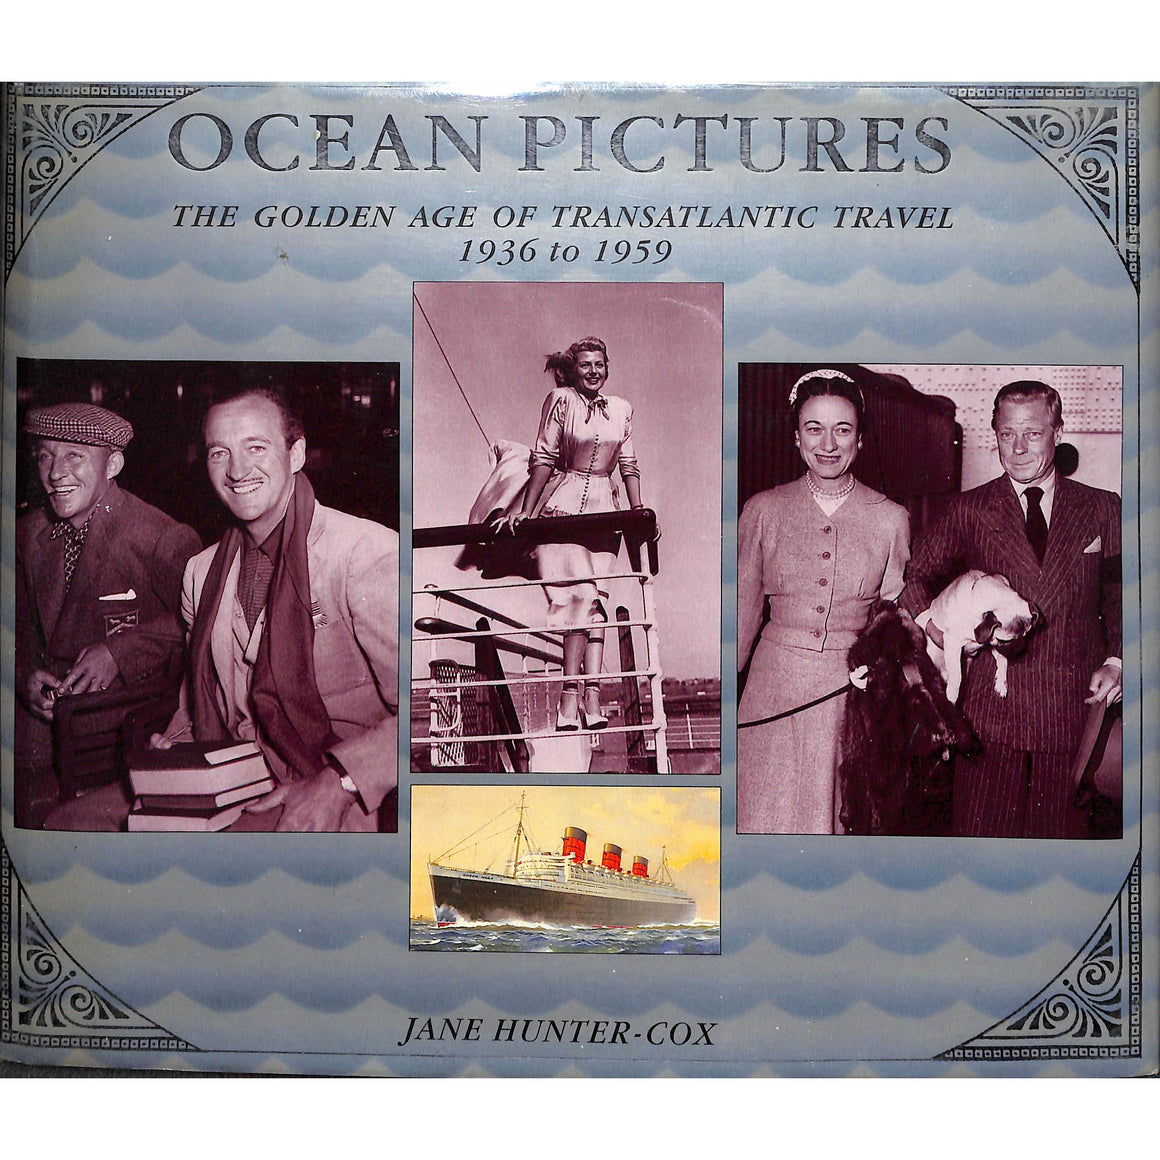 Ocean Pictures: The Golden Age of Transatlantic Travel 1936 to 1959